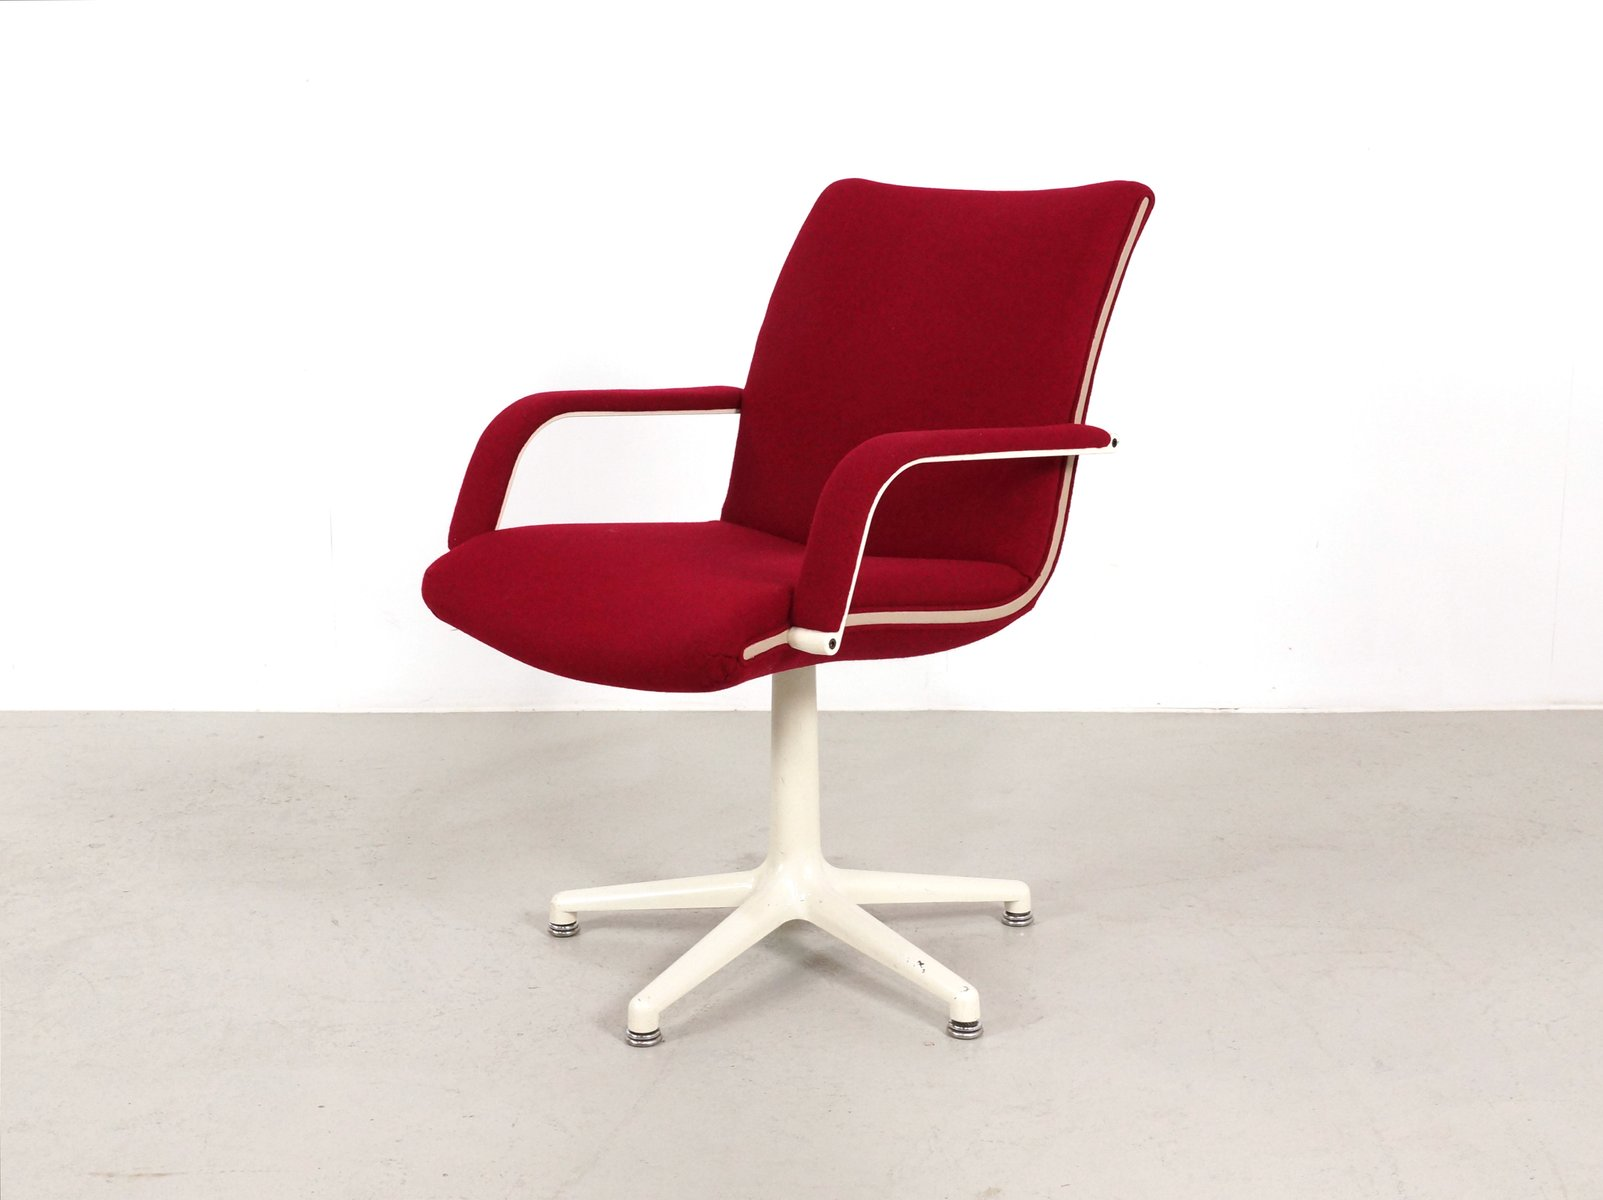 vintage office chairs recliner chair reviews or desk by geoffrey harcourt for artifort price per piece